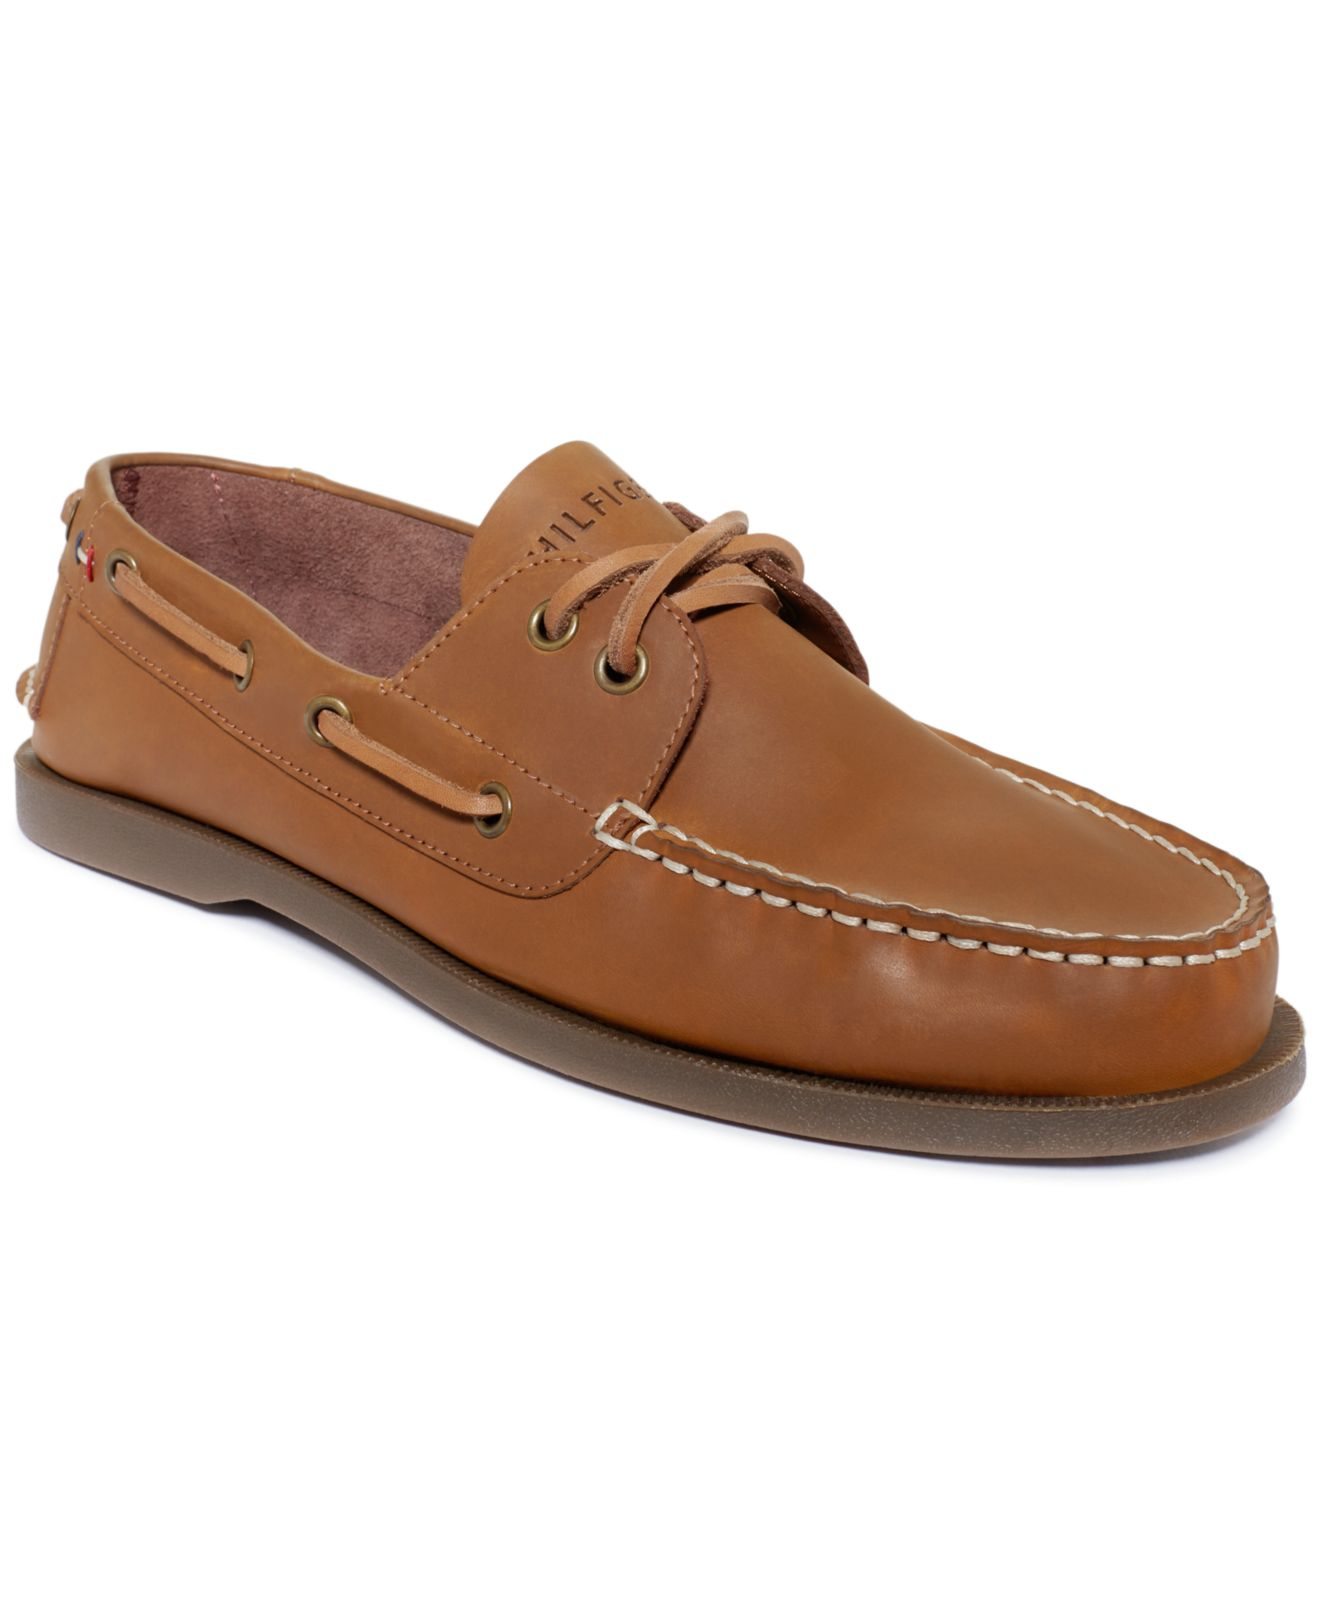 hilfiger s bowman boat shoes in brown for lyst